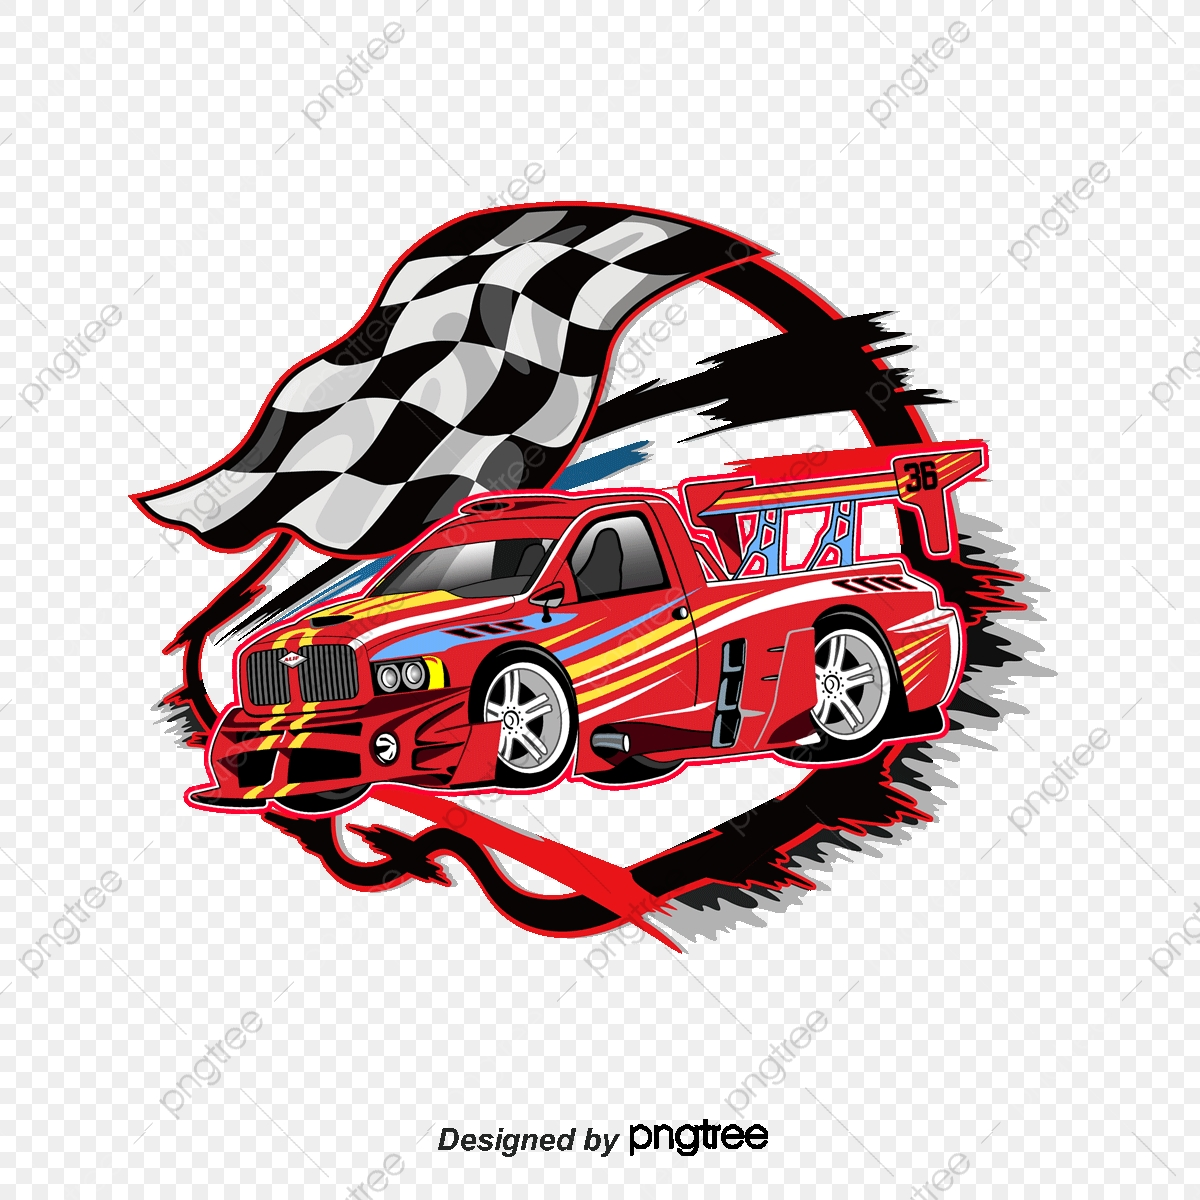 Racing Vector Material, Racing, Clan, Vector PNG and Vector with